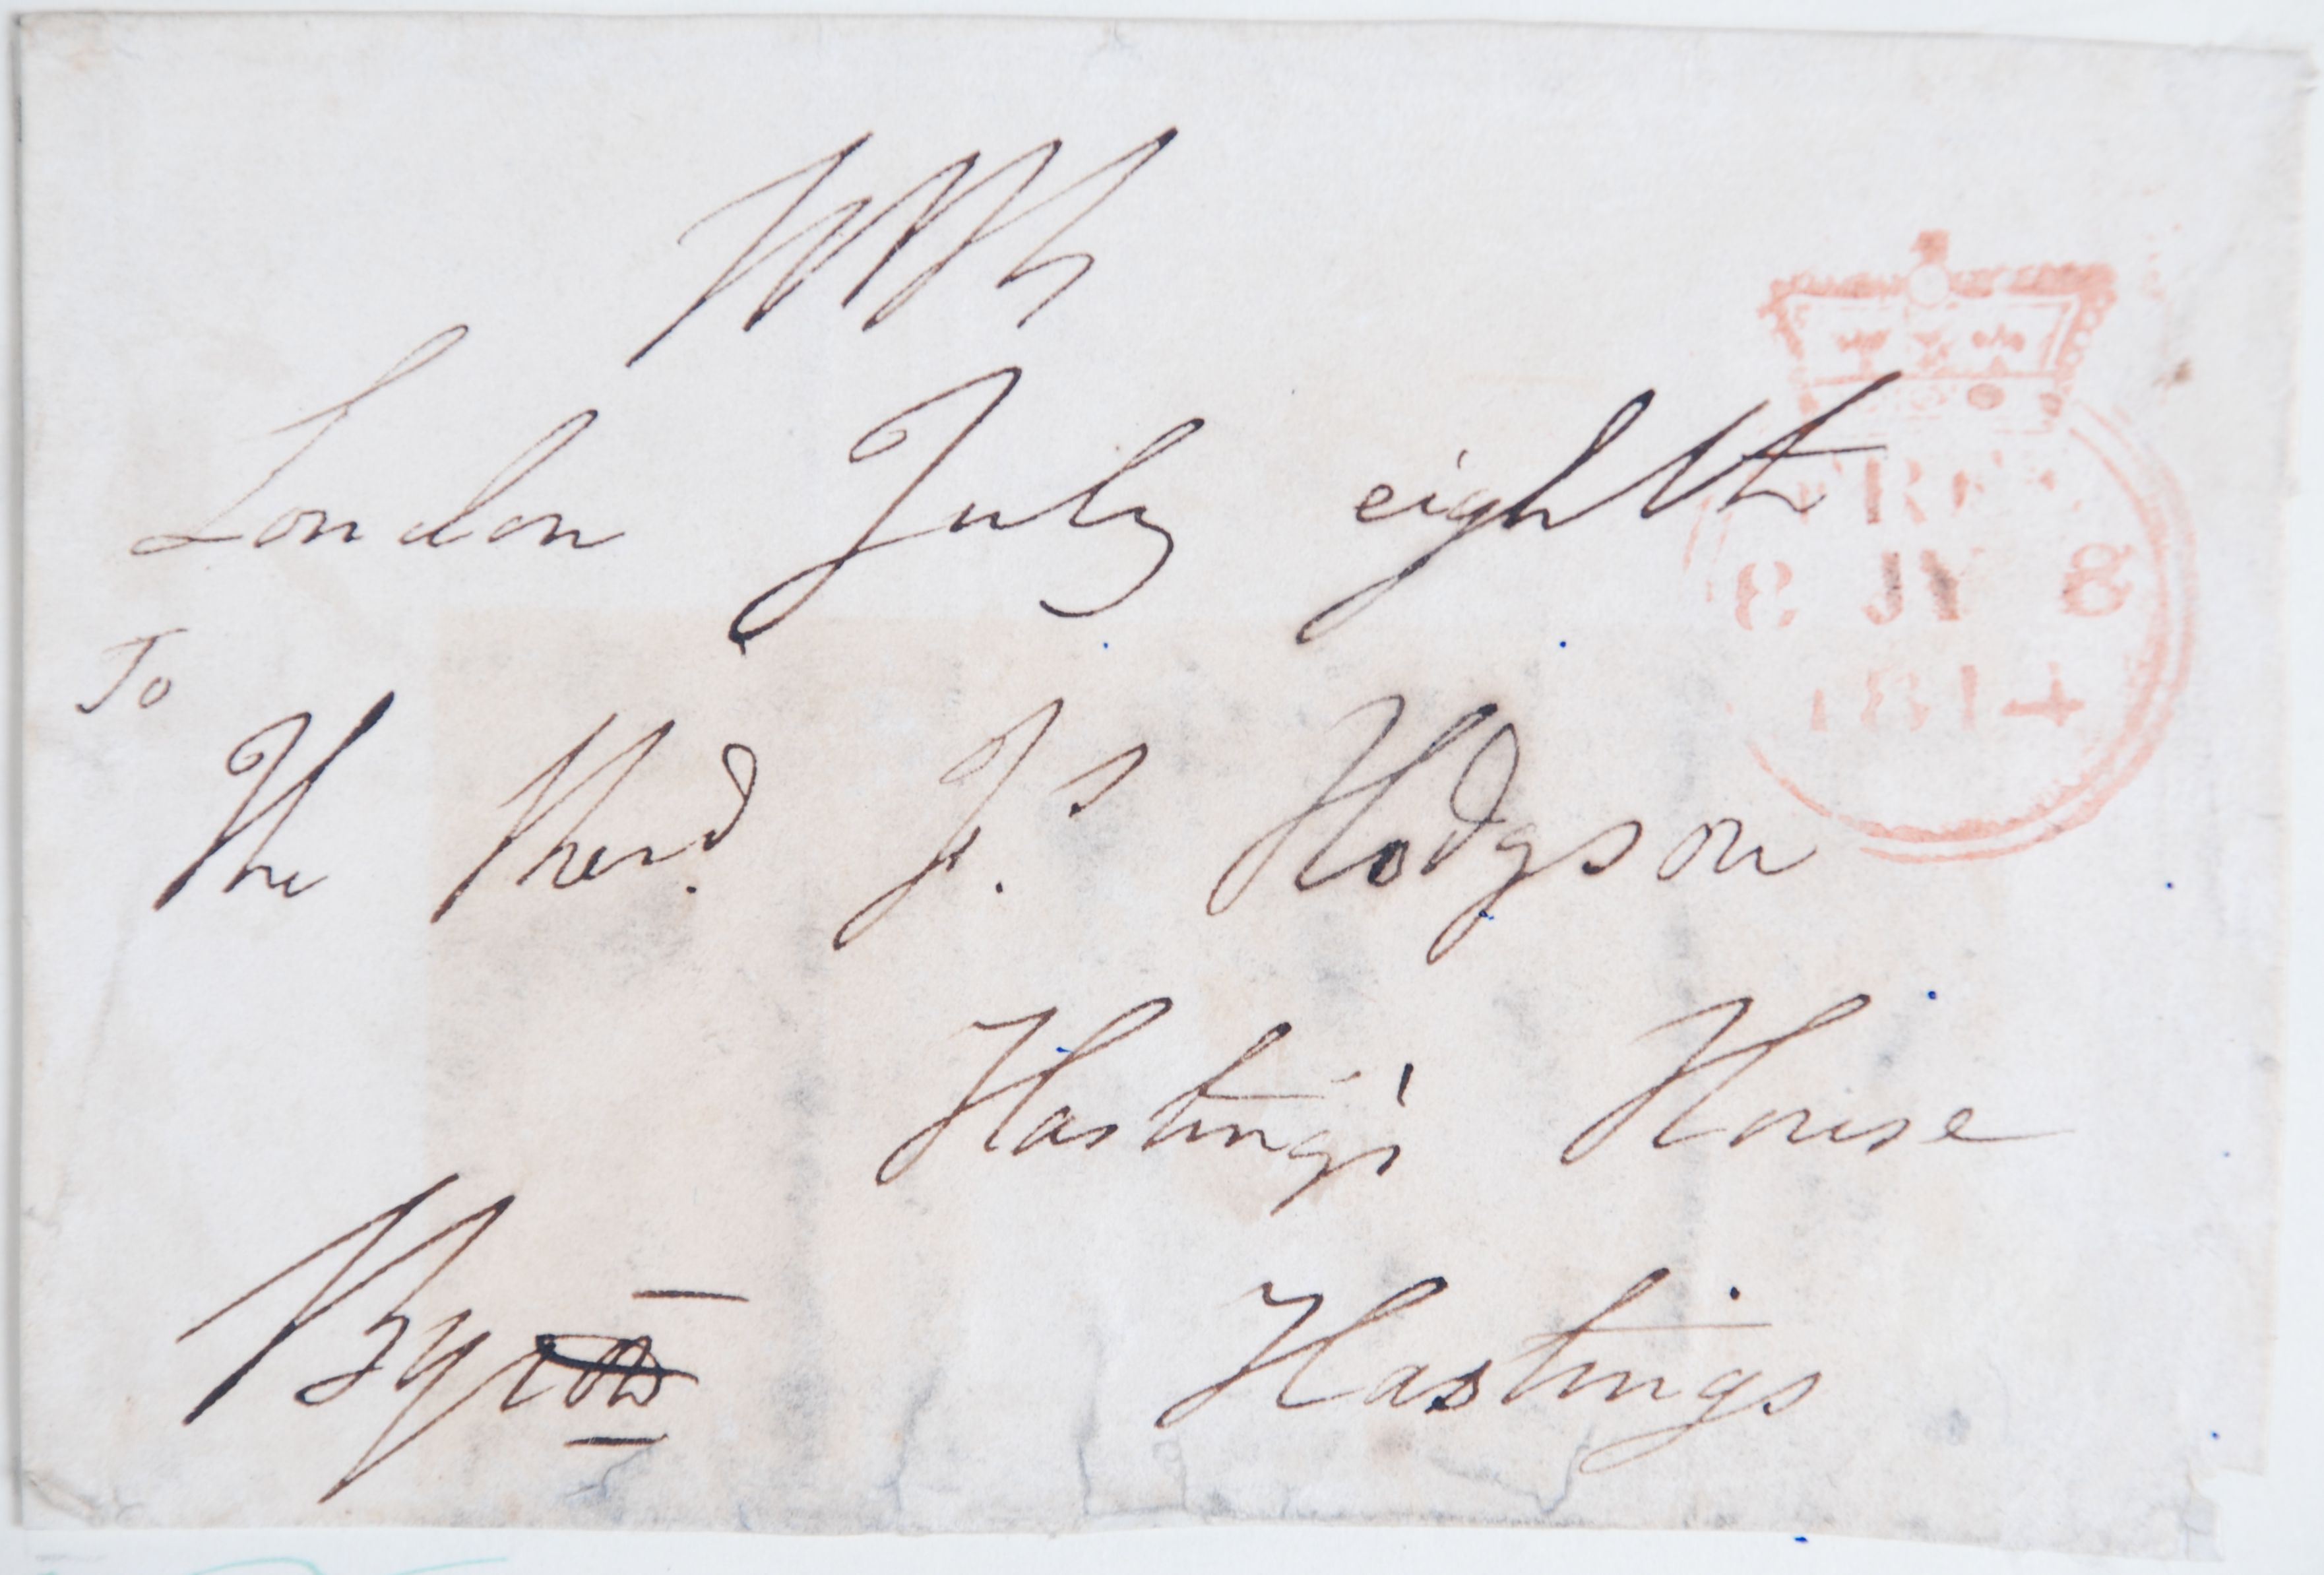 Reed Autograph Letters Album B3, no. 8: Lord Byron.